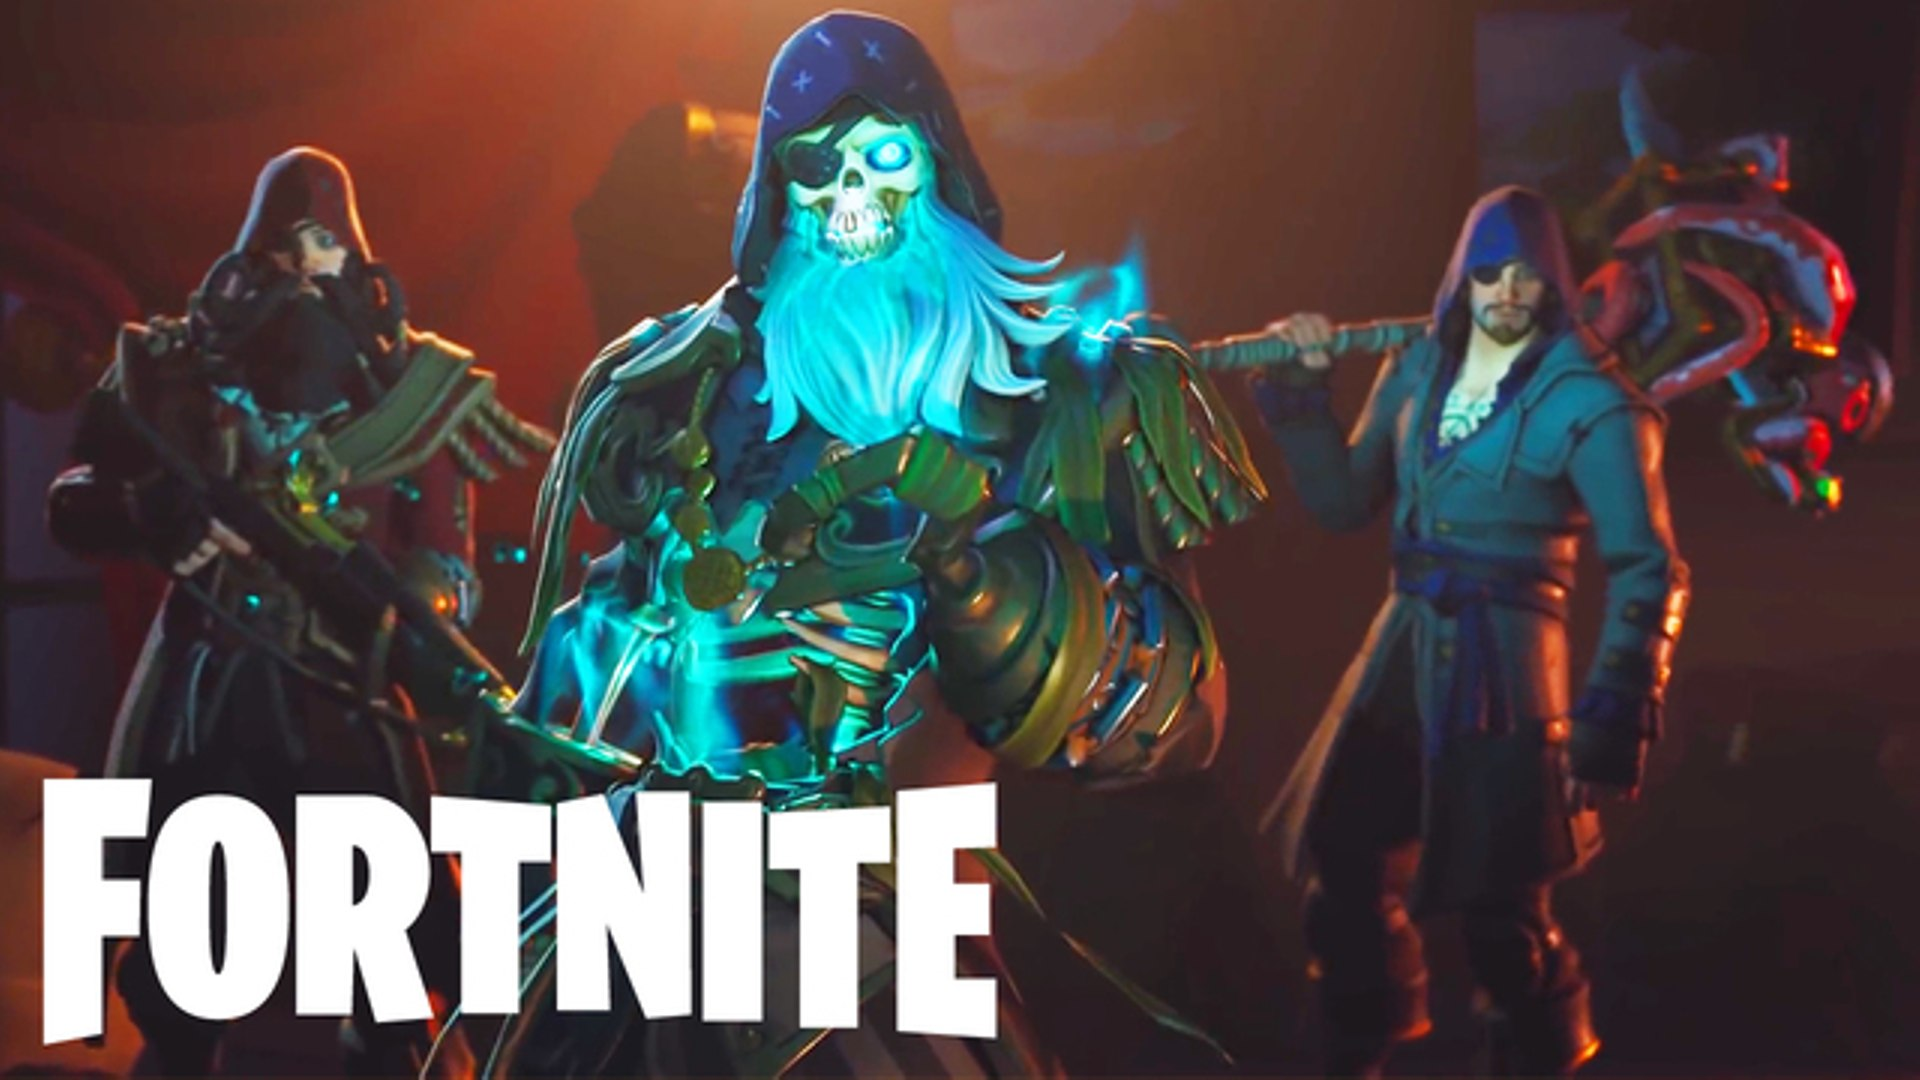 Free Download Fortnite Season 8 Wallpaper Cool Fortnite Aimbot Download On Xbox 1920x1080 For Your Desktop Mobile Tablet Explore 32 Battle Pass Wallpapers Battle Pass Wallpapers Fortnite Battle Pass